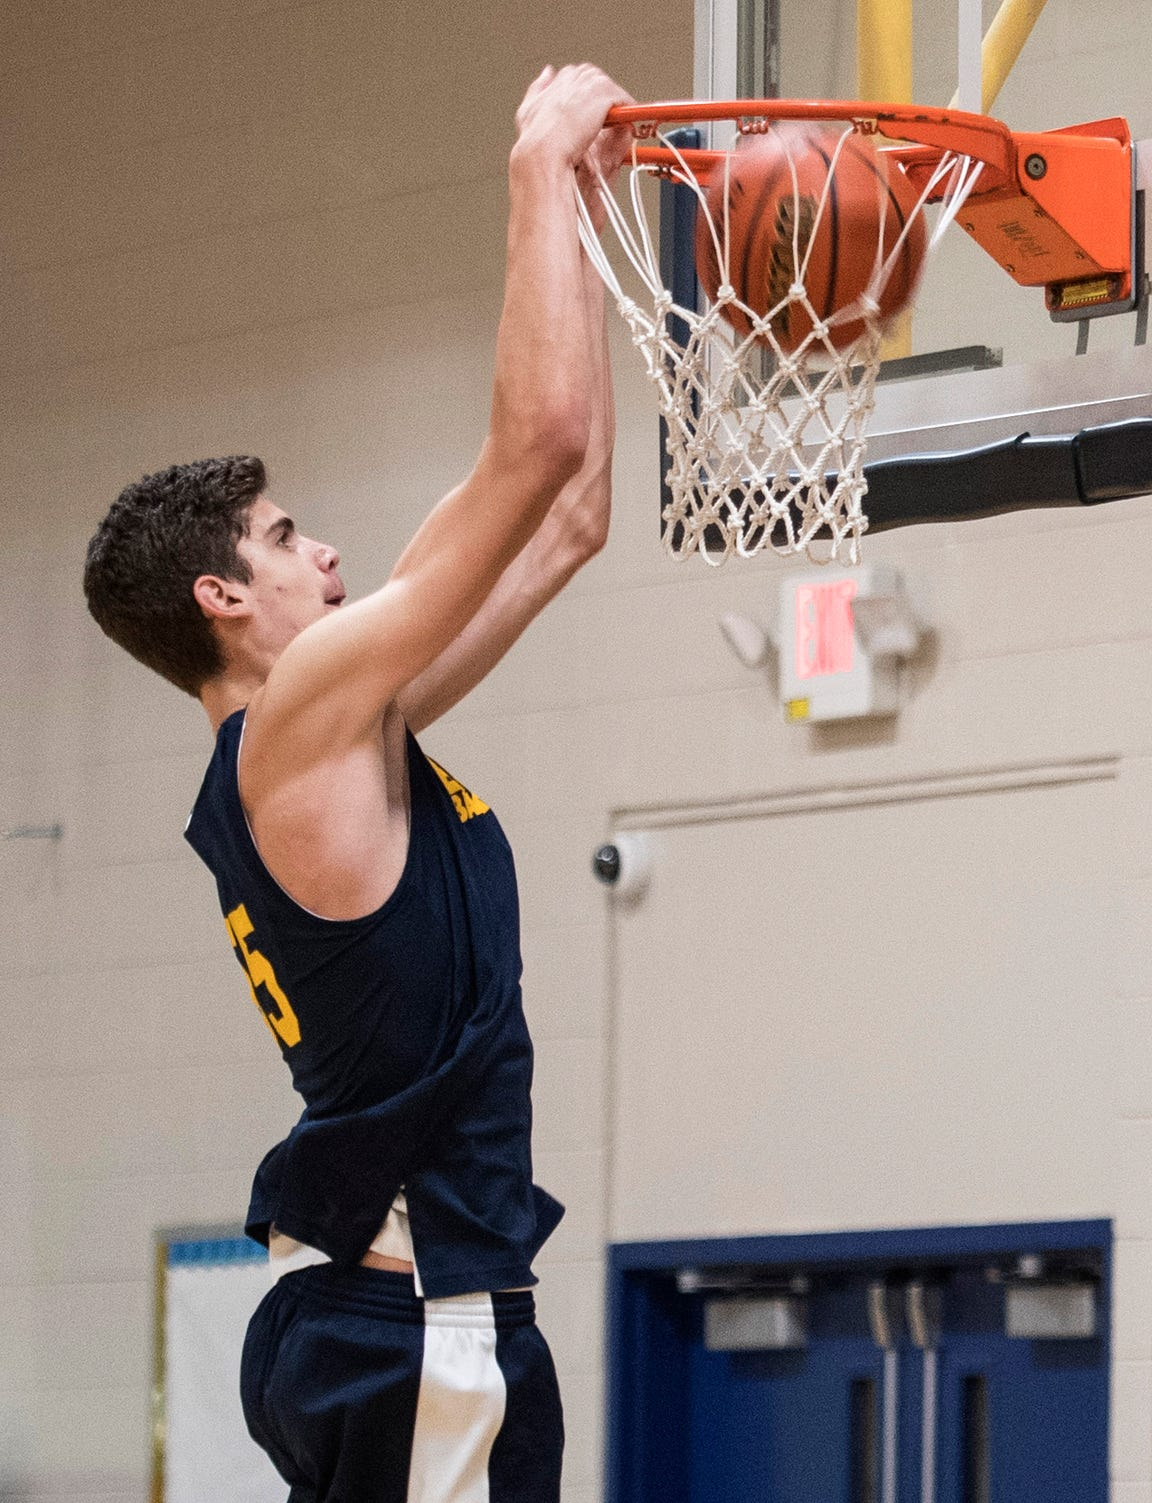 The 7 feet 1 inch junior Noah Hupmann slams the ball into the basket during a practice at Evansville Day School Tuesday, Nov. 13, 2018.